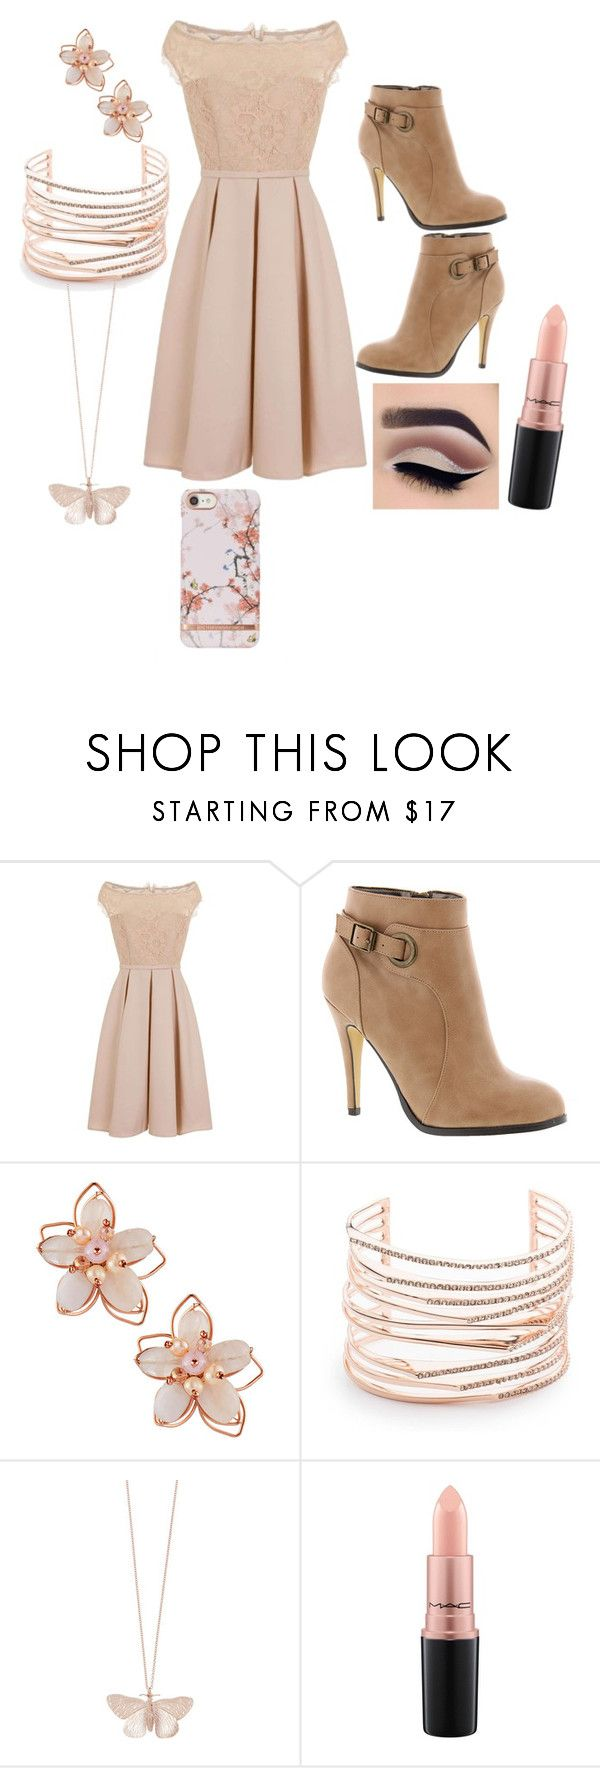 """Untitled #54"" by mini-lucifer ❤ liked on Polyvore featuring Little Mistress, Michael Antonio, NAKAMOL, Alexis Bittar, Alex Monroe and MAC Cosmetics"